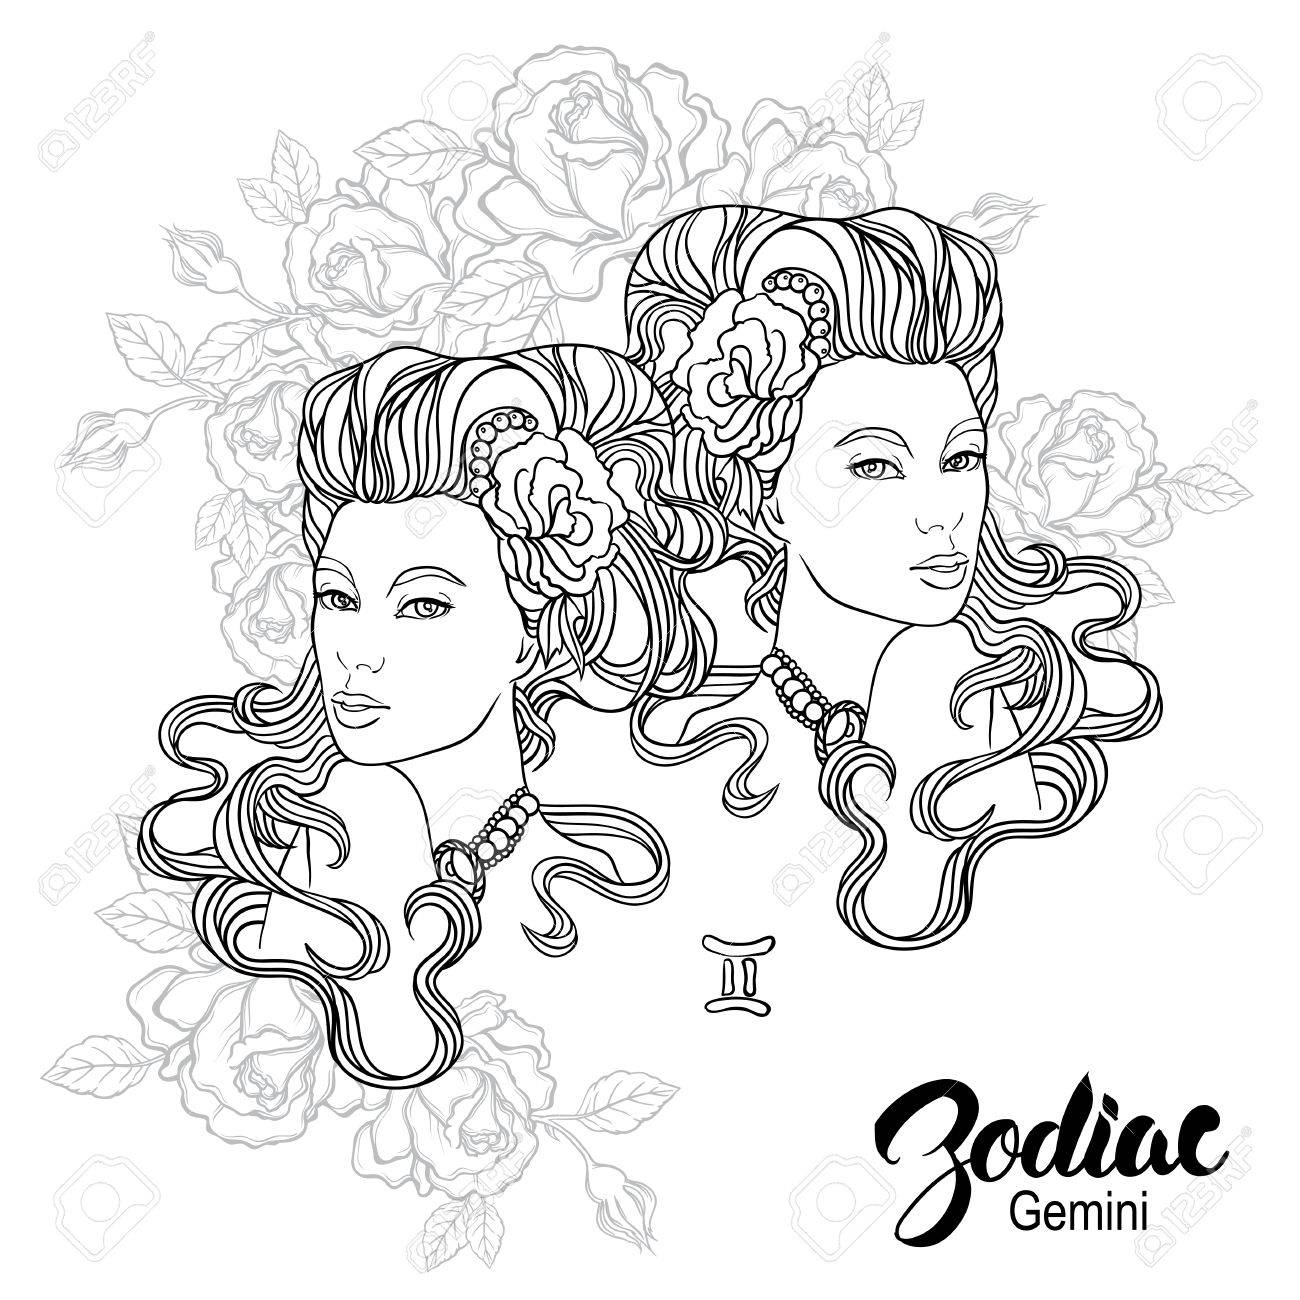 gemini coloring pages.html